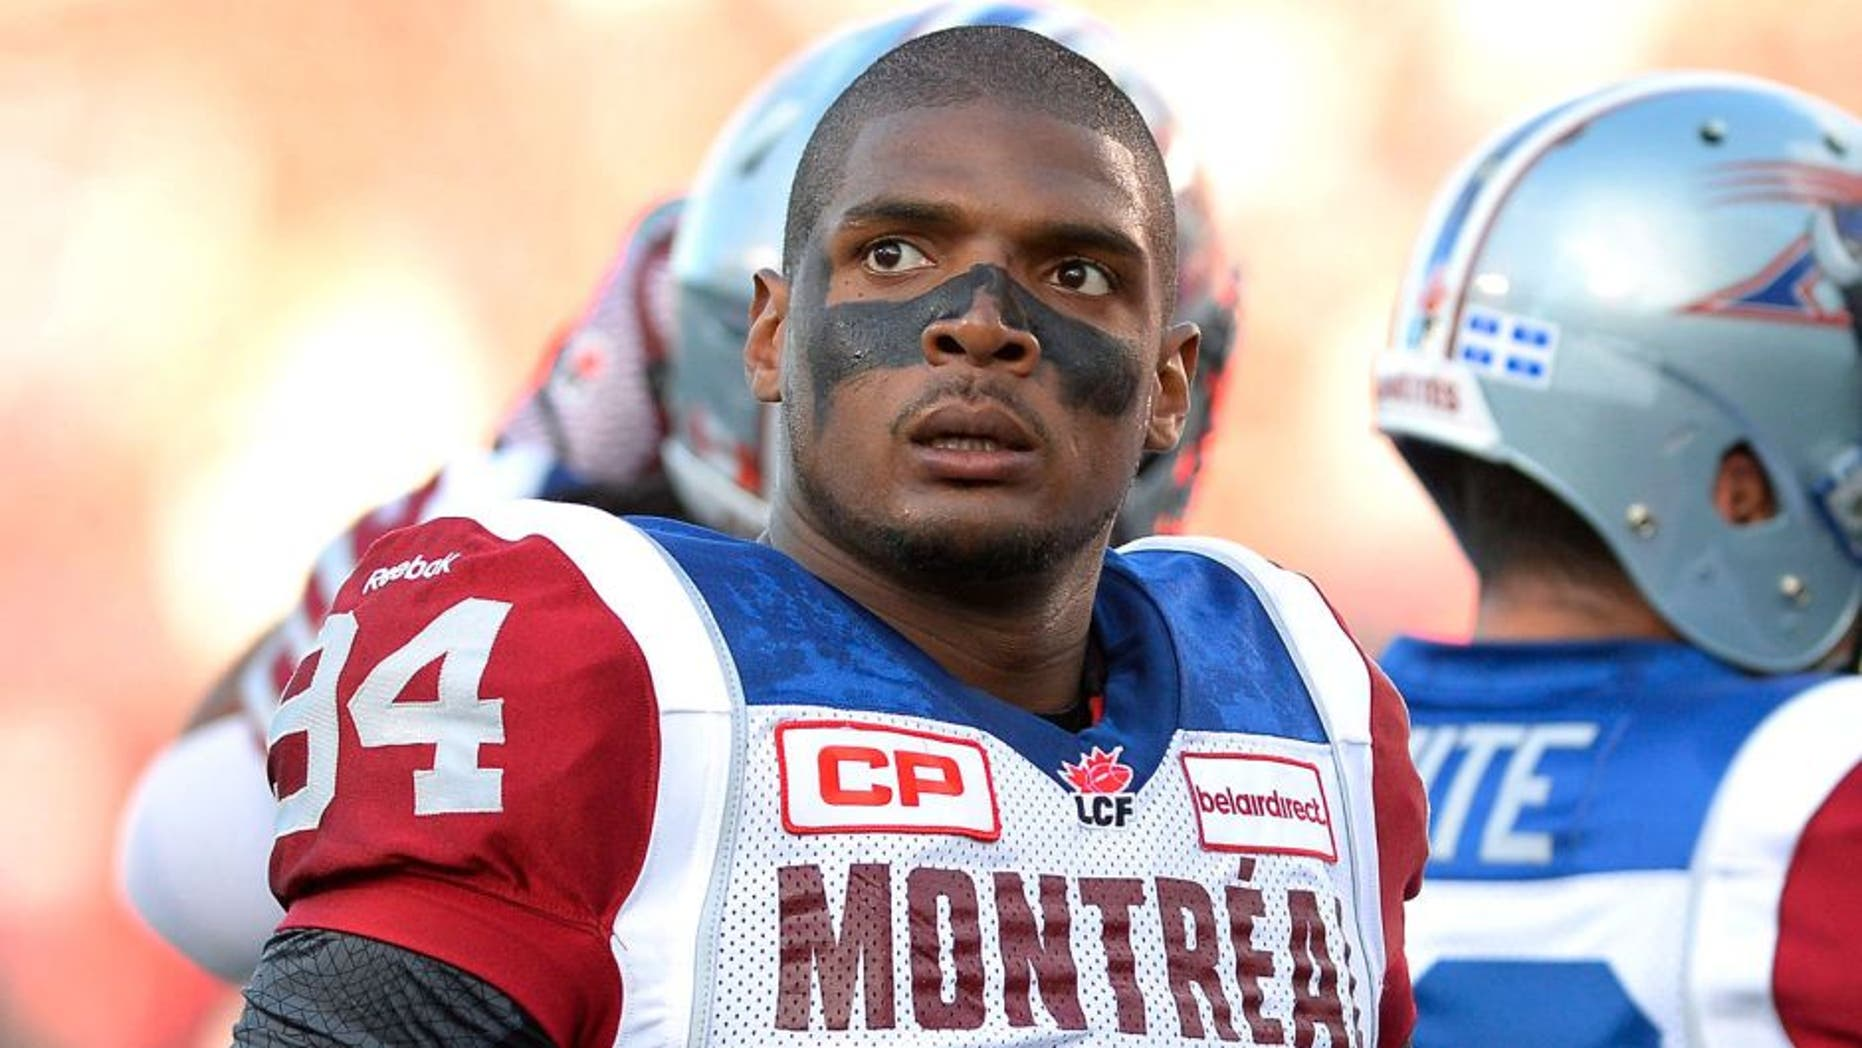 Montreal Alouettes' Michael Sam and teammates warm up for a Canadian Football League game against the Ottawa Redblacks in Ottawa, Ontario, on Friday, Aug. 7, 2015. (Justin Tang/The Canadian Press via AP)